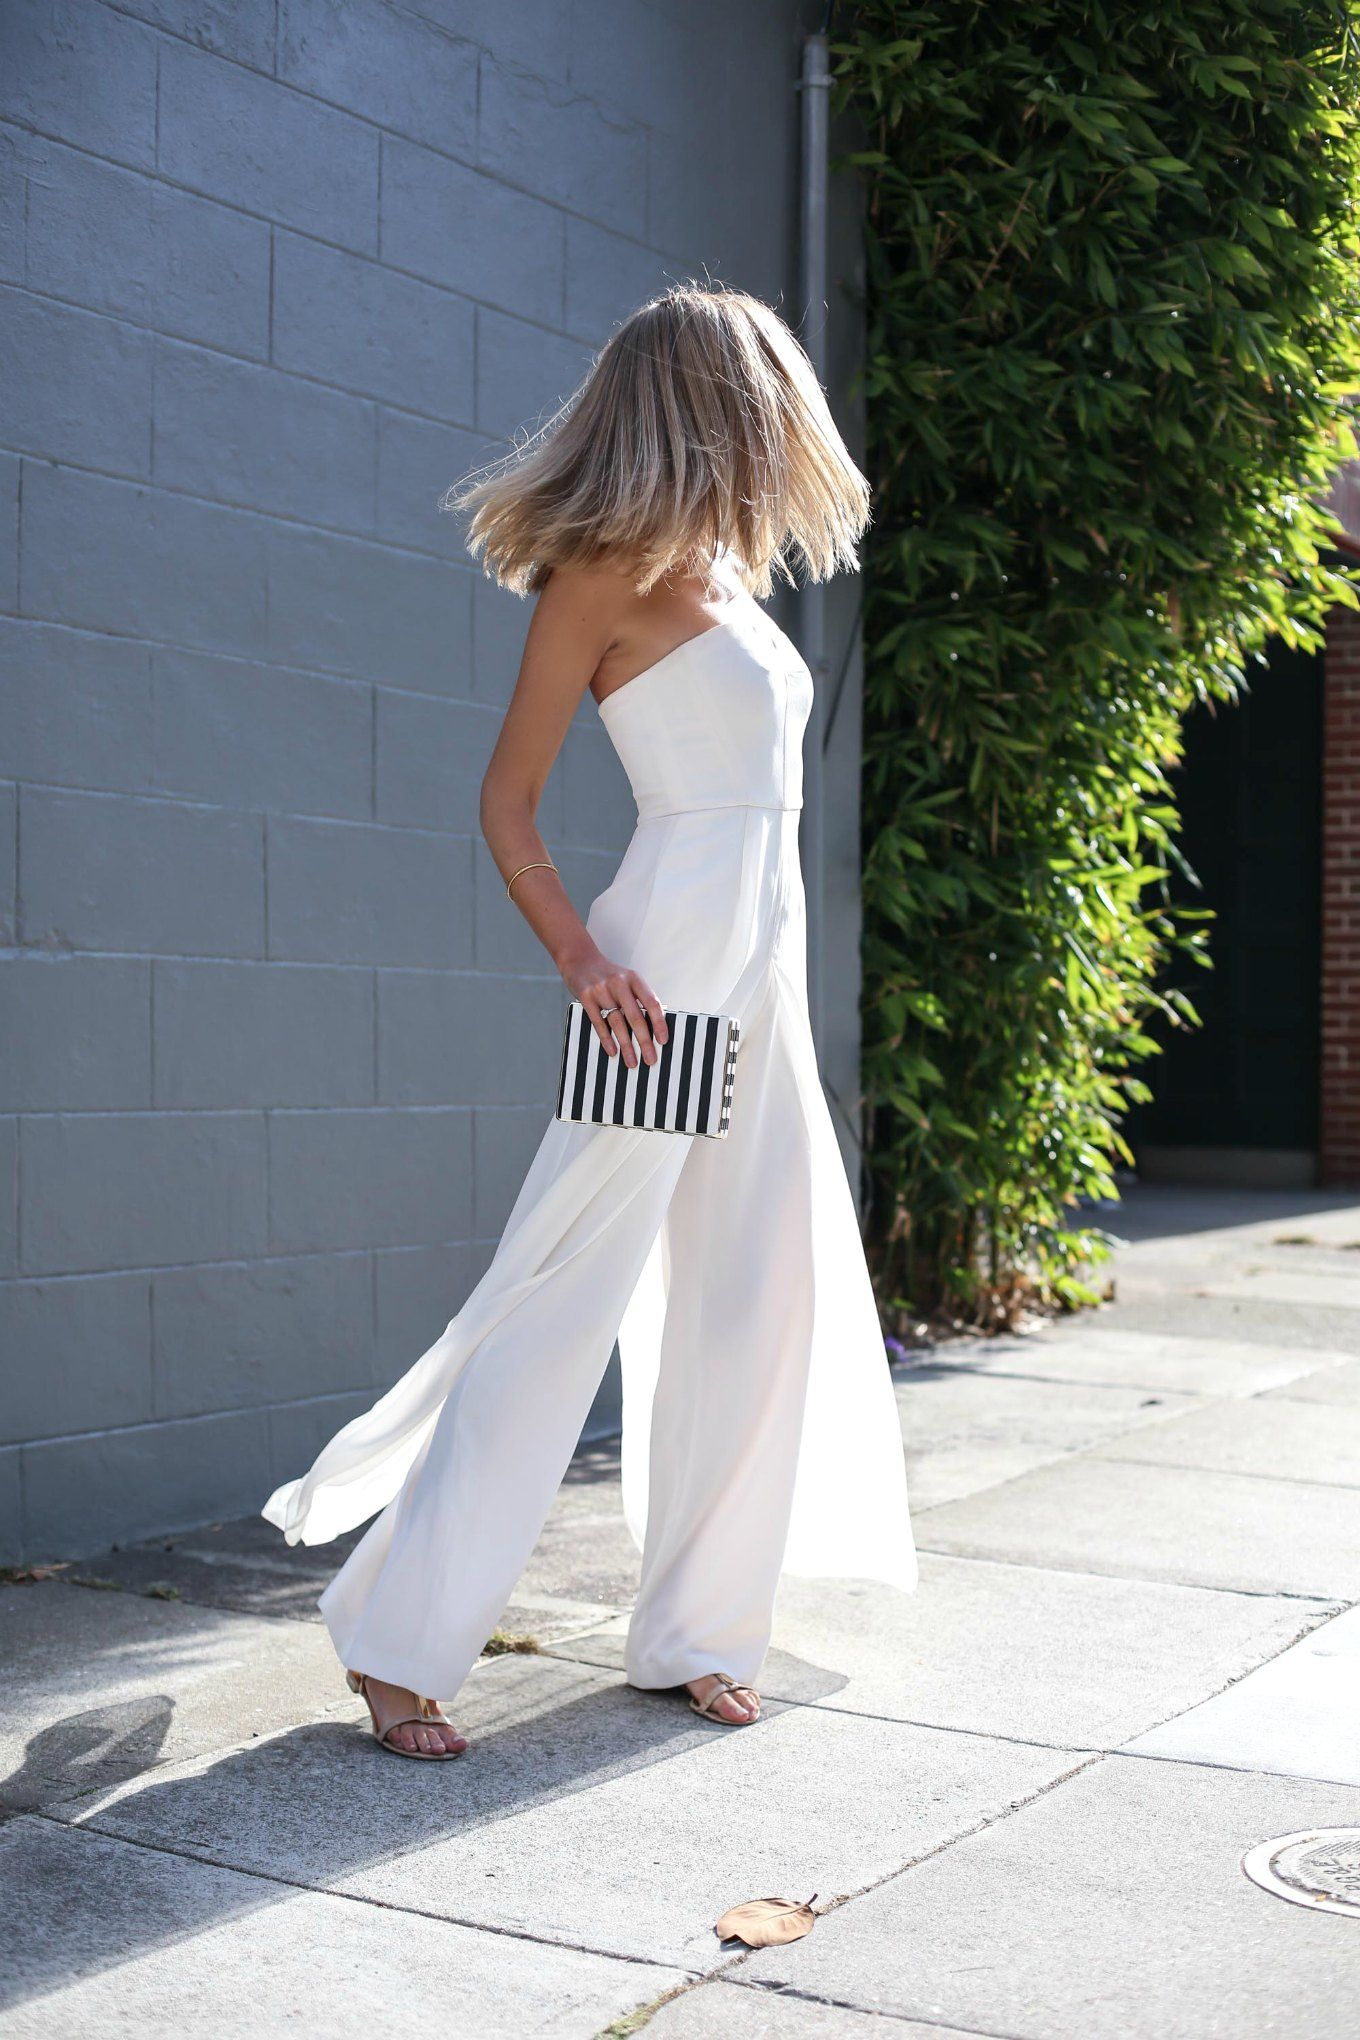 faa63b985d White Strapless Jumpsuit for Our Anniversary